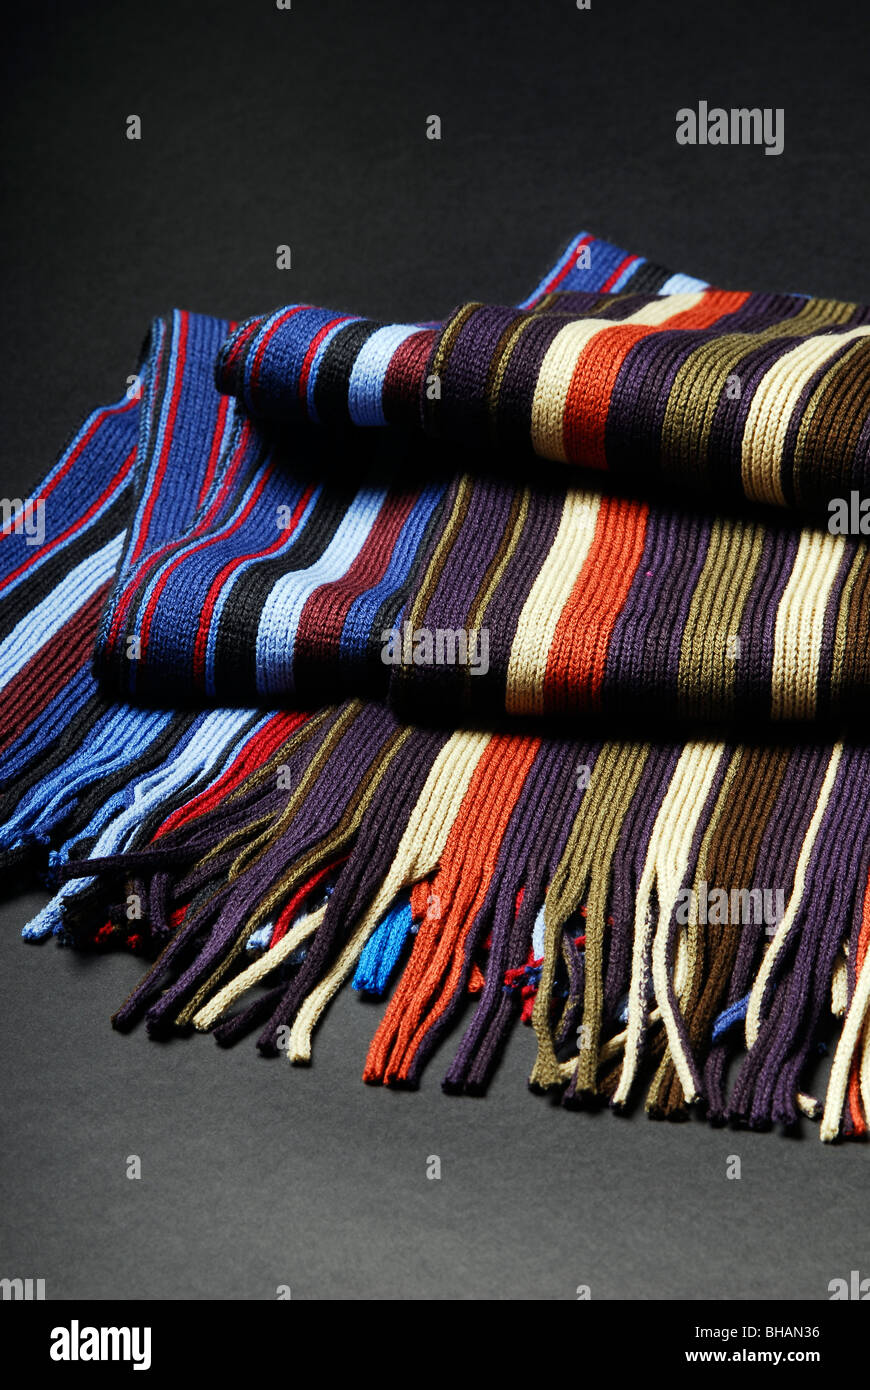 A selection of woolen scarves on a black background UK - Stock Image